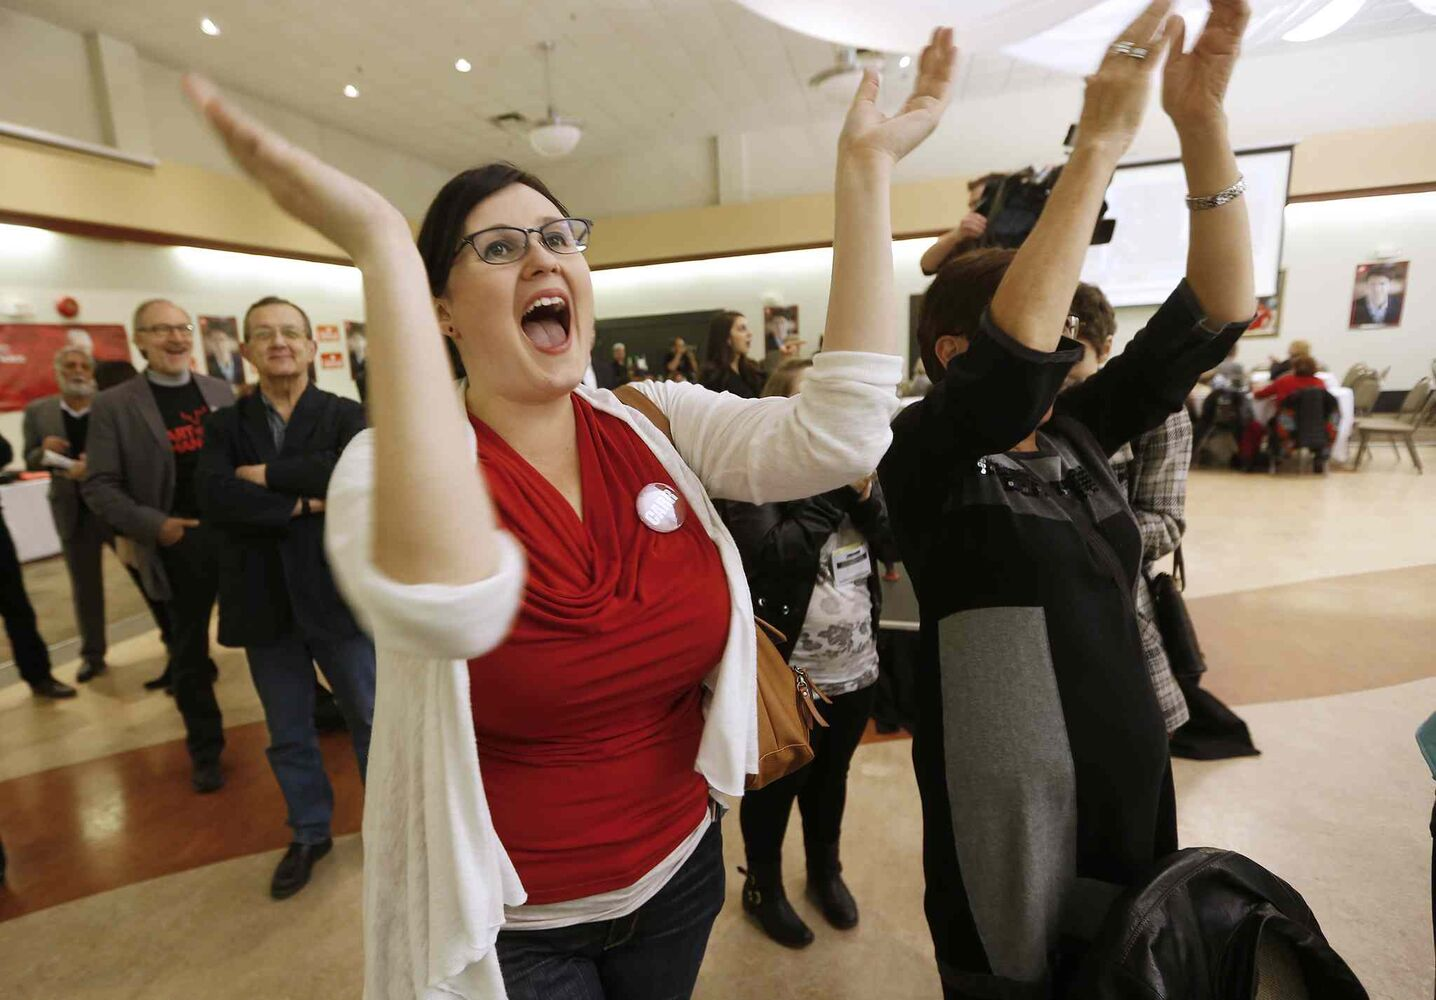 Randi Anderson celebrates the victory of Jim Carr, Liberal candidate in Winnipeg South Centre, over Conservative Party incumbent Joyce Bateman on election night in Winnipeg on Monday, October 19, 2015.  (John Woods / The Canadian Press)